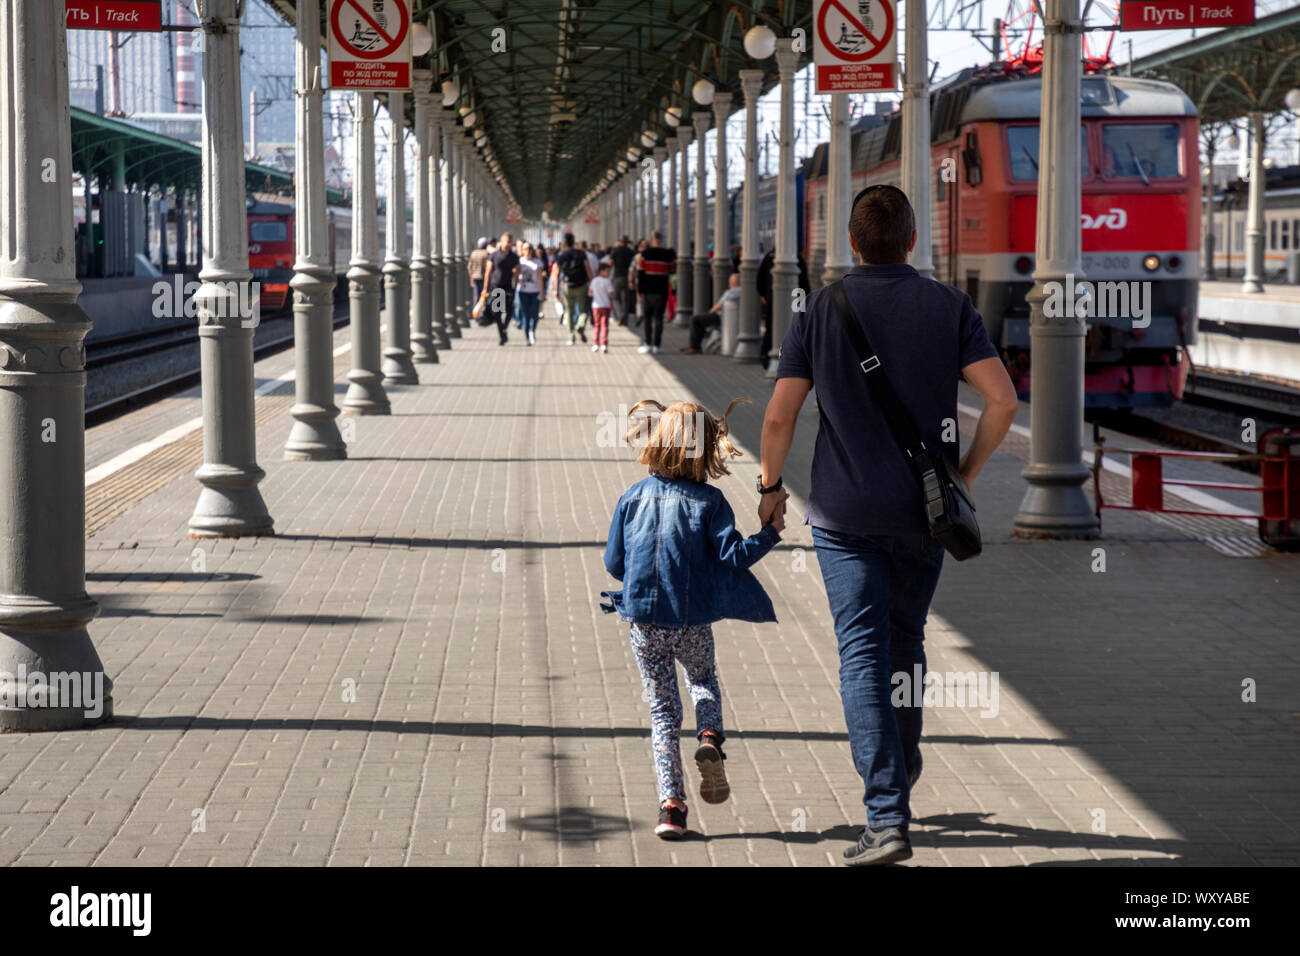 People walk on the platform of the Moscow Belorussky railway station with commuter trains and long-distance trains in Moscow, Russia Stock Photo